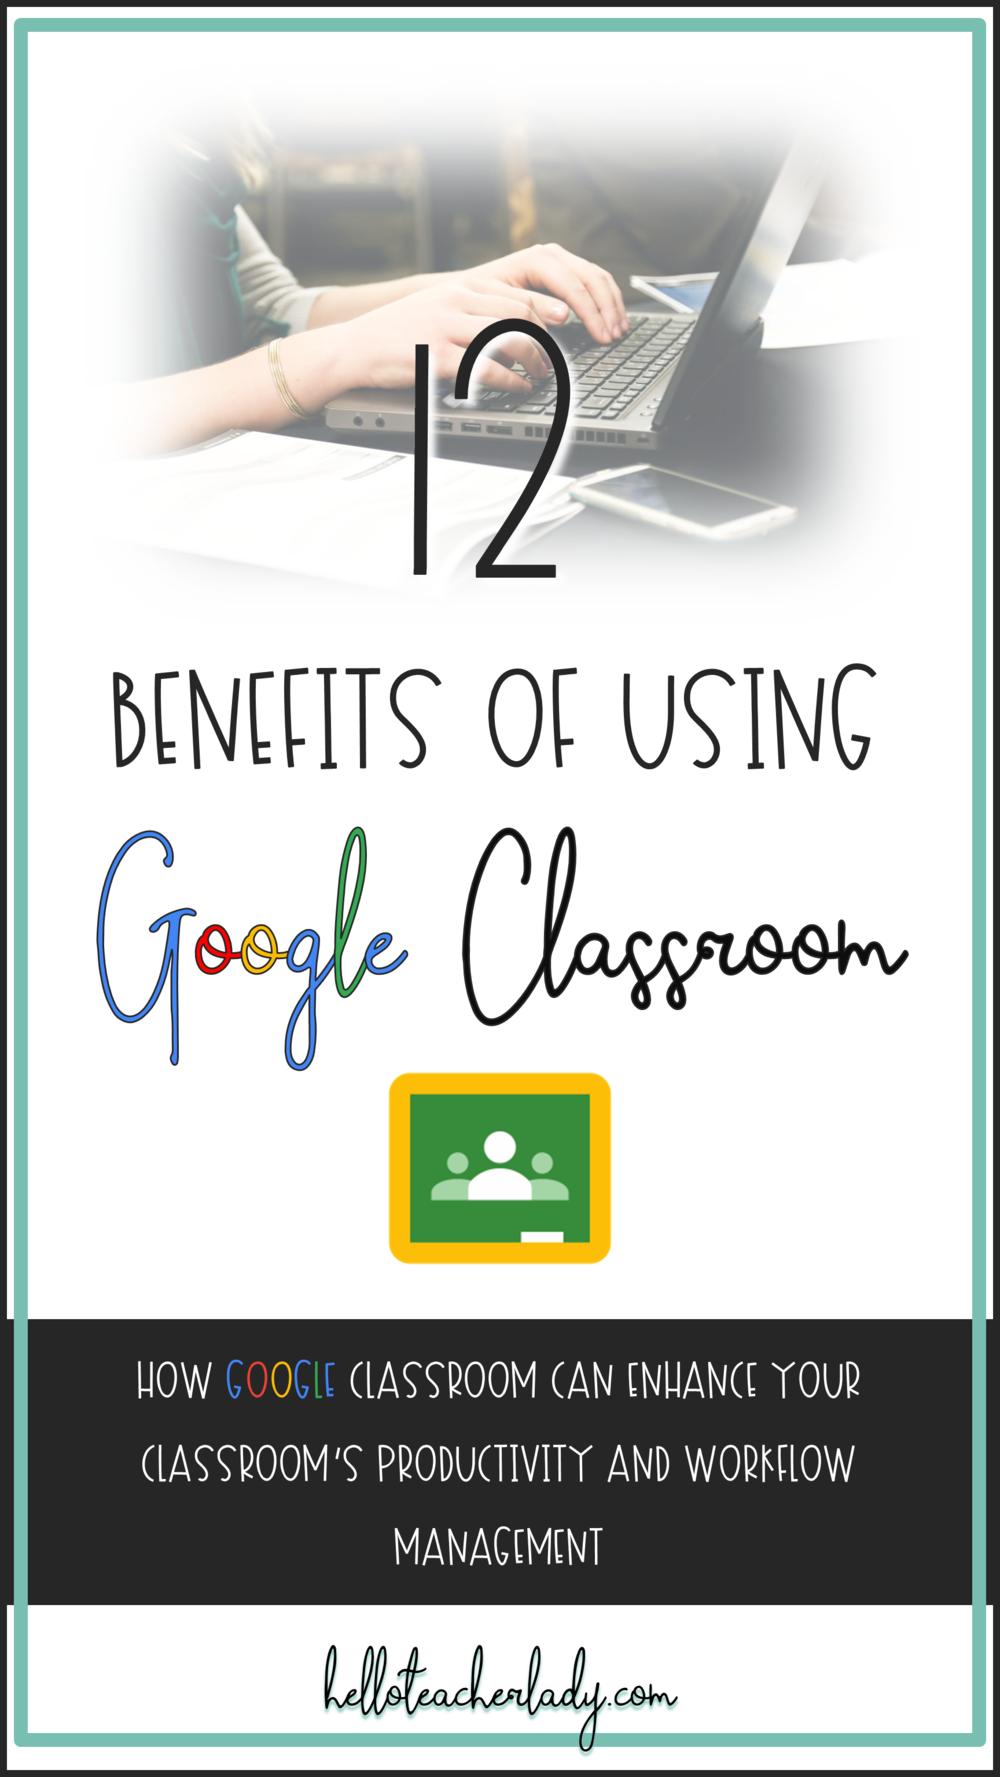 Elevate your classroom's productivity and take workflow management to the next level with Google Classroom. #GoogleEDU